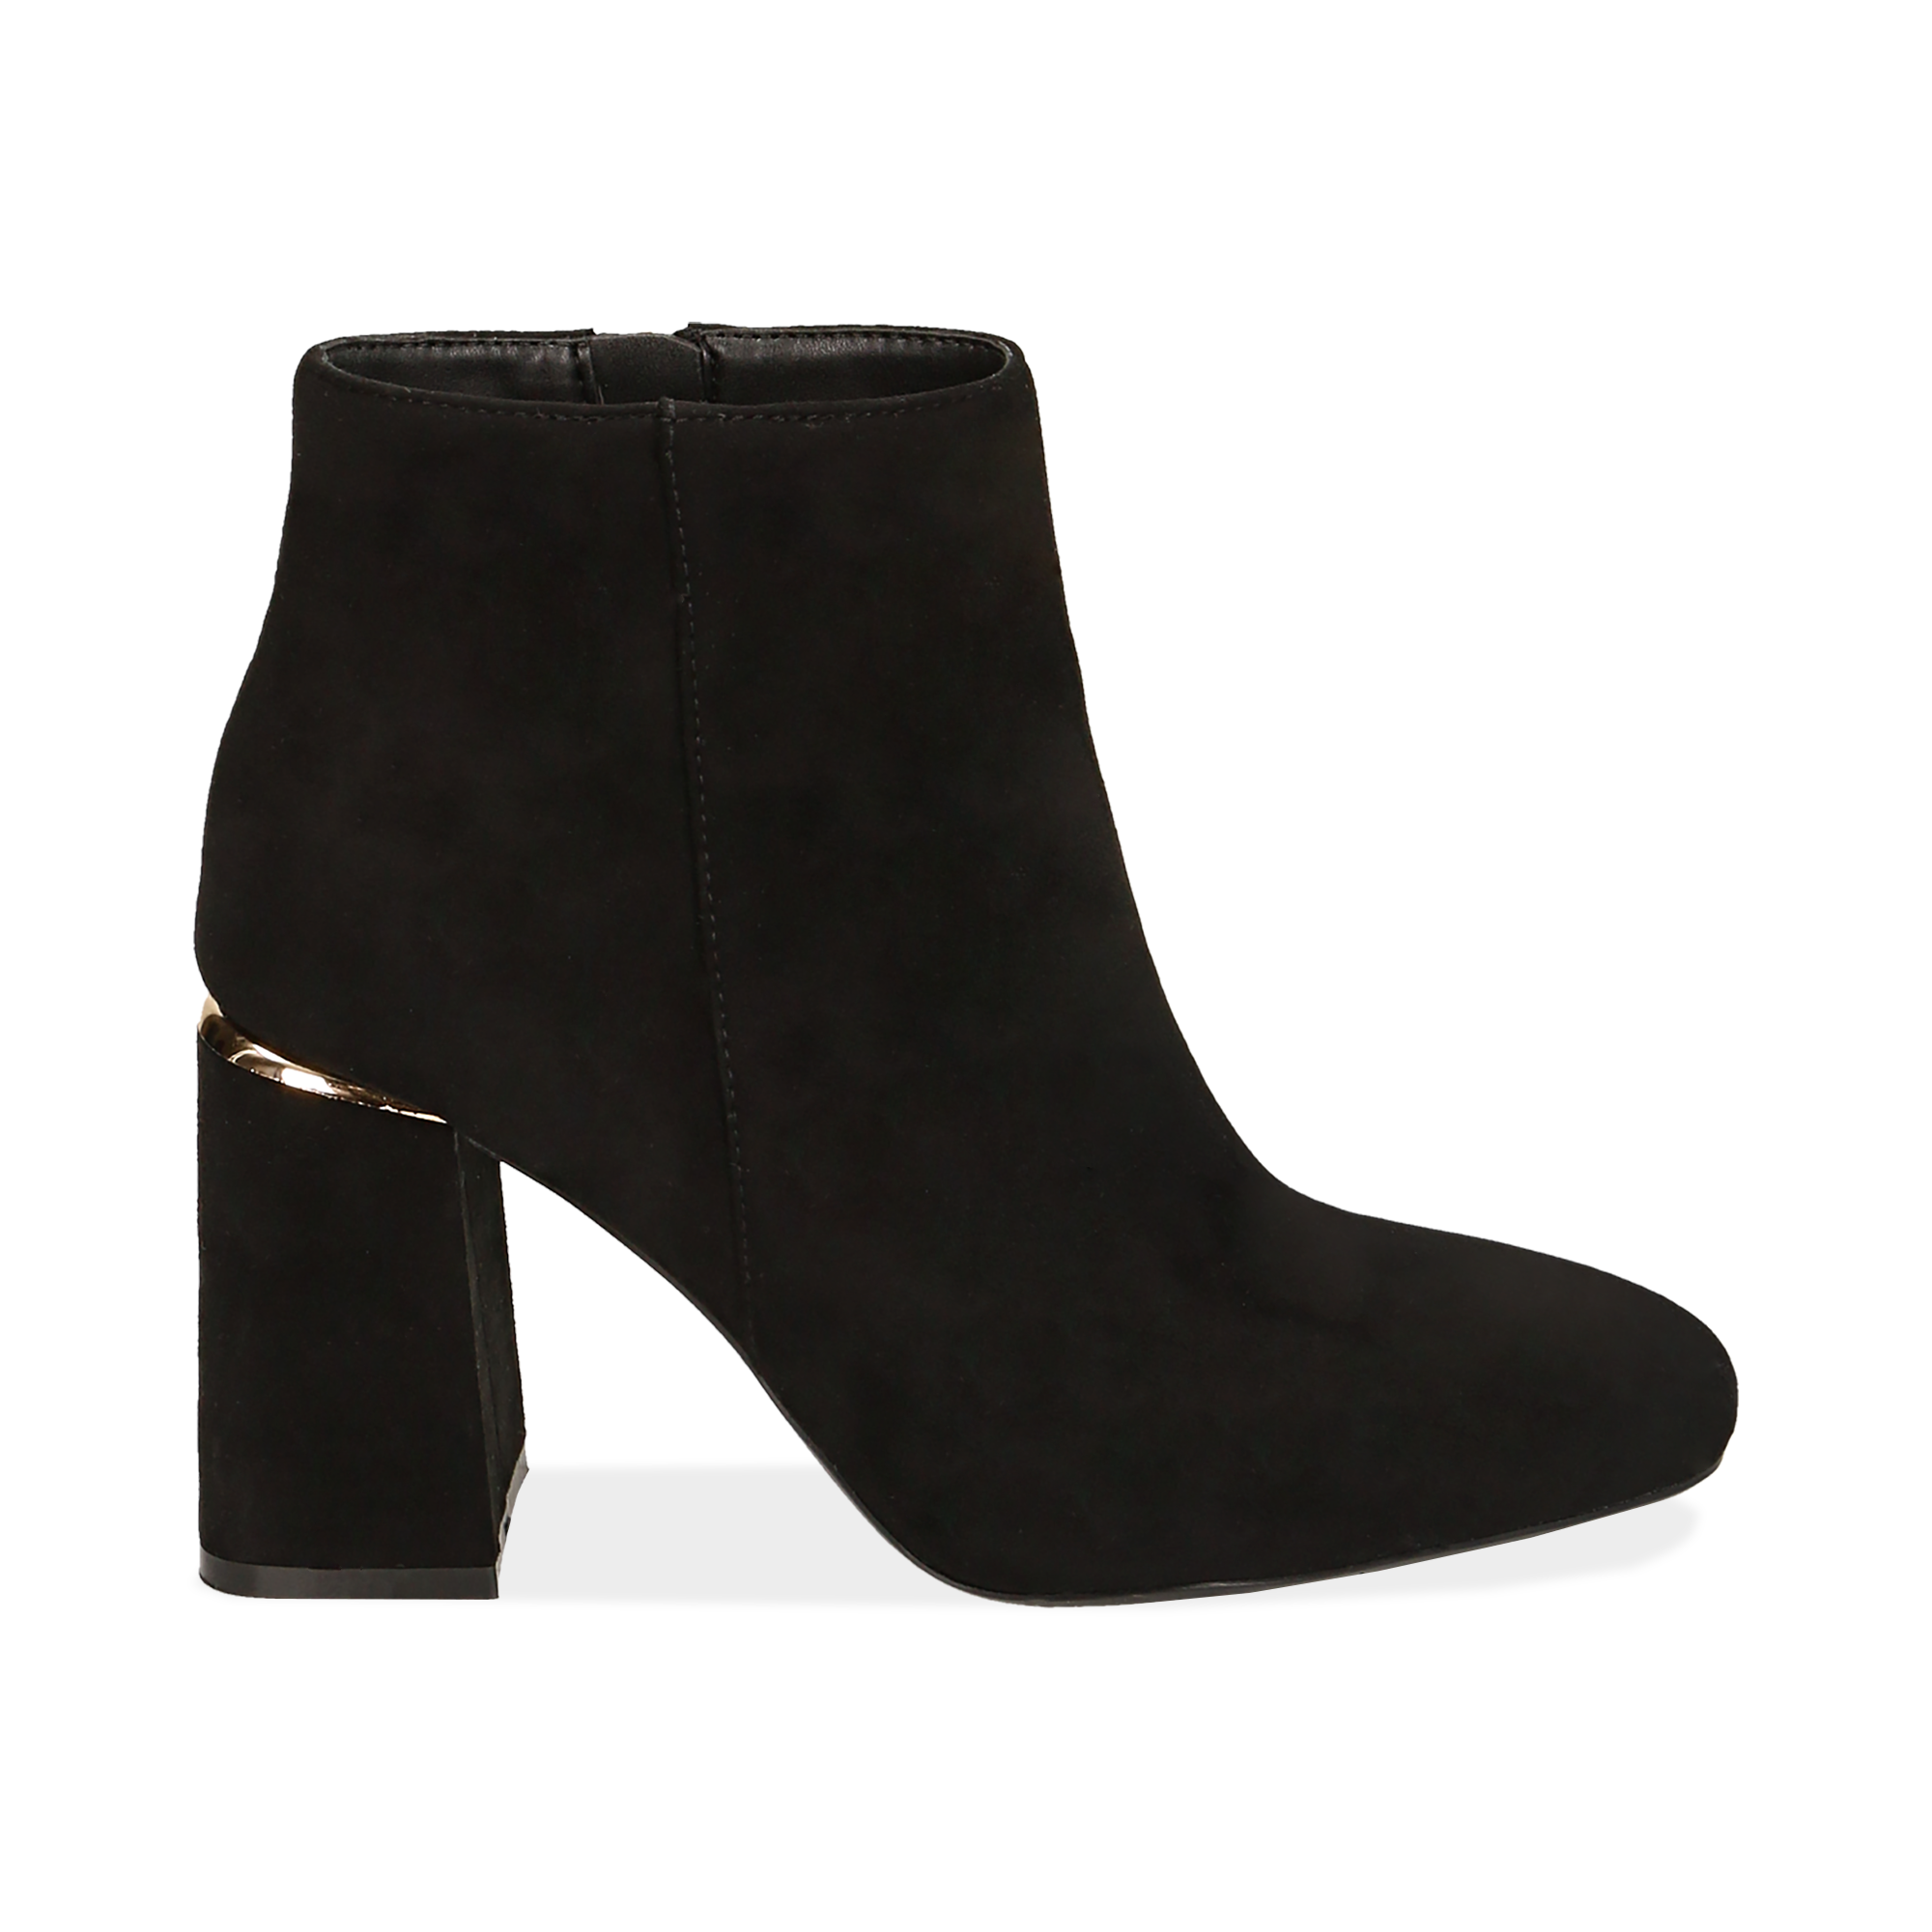 Ankle boots neri in microfibra, tacco 9 cm